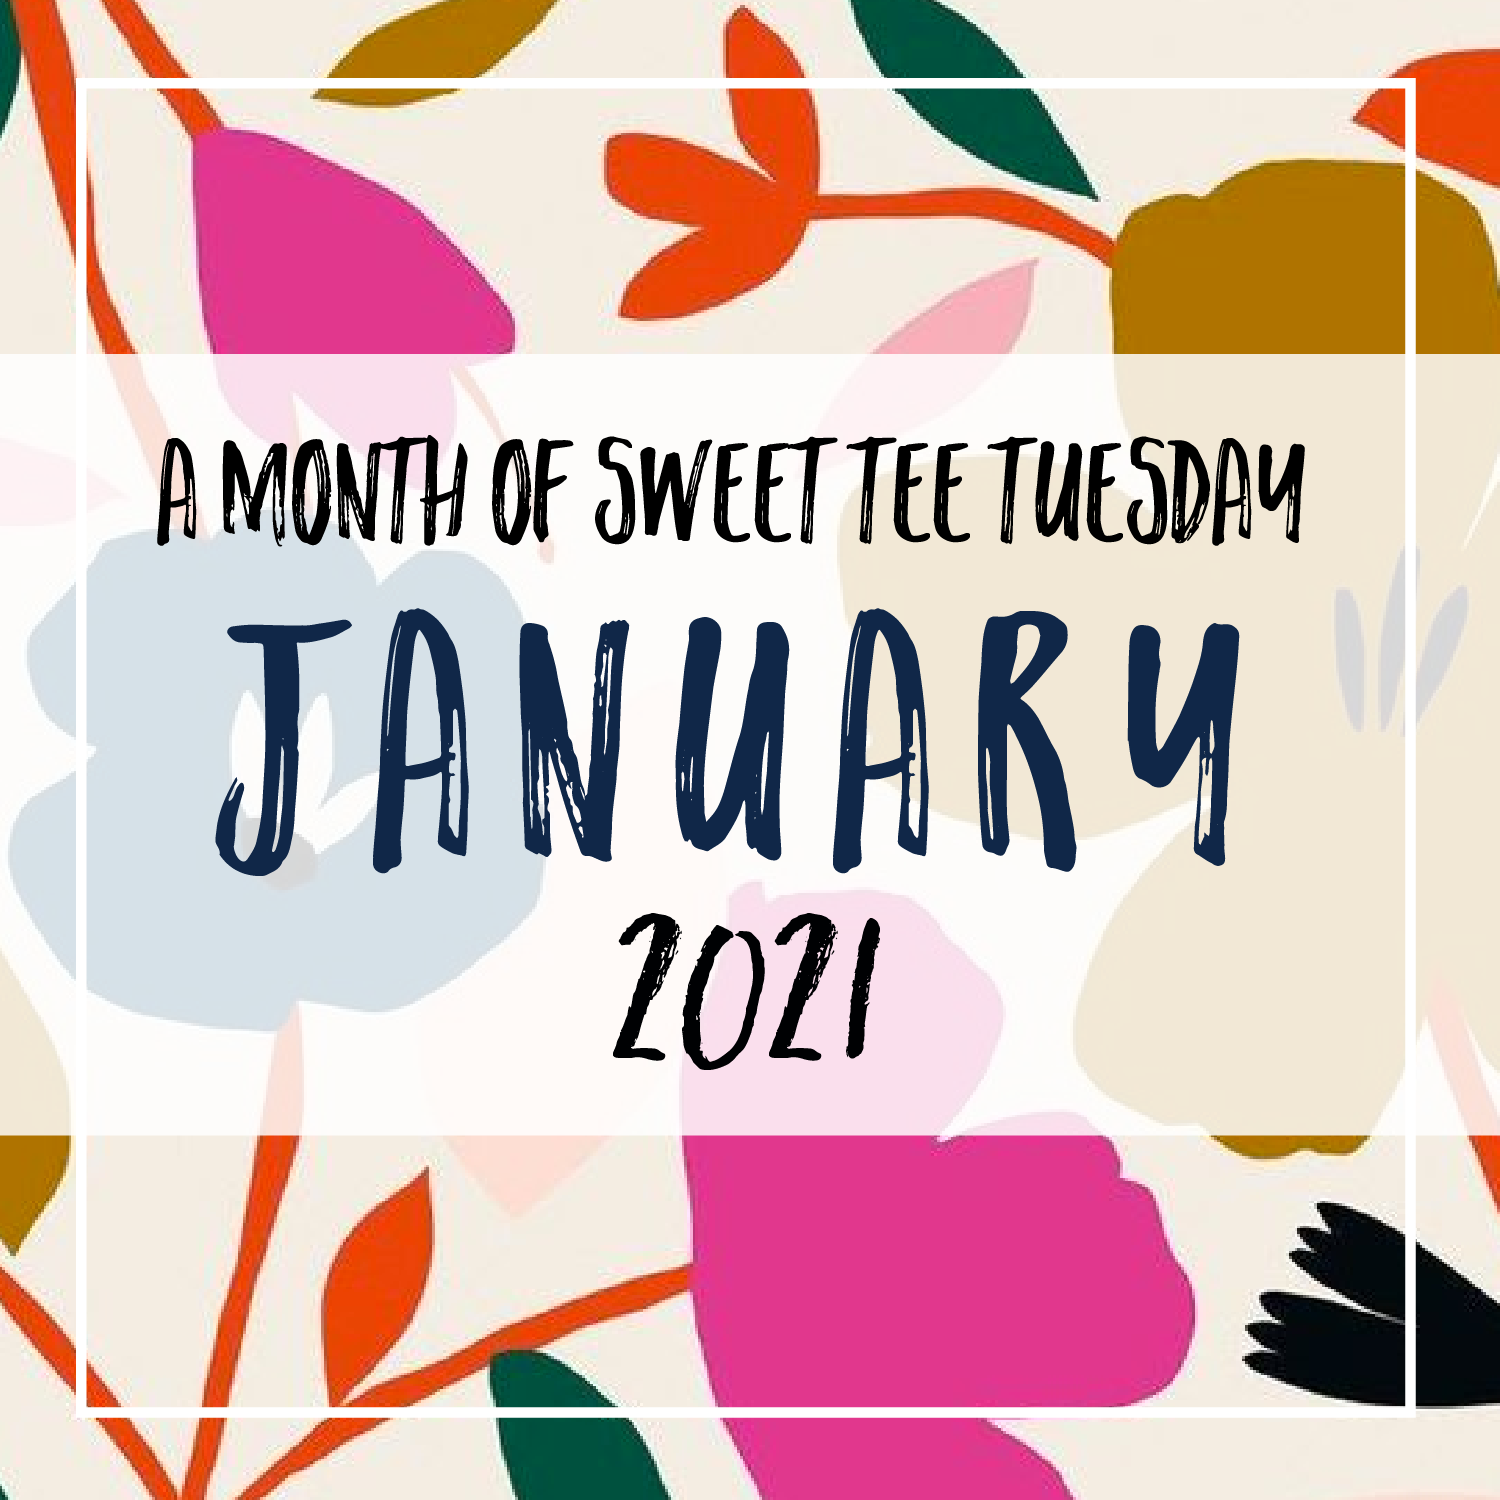 JANUARY 2021 - MONTH OF SWEET TEE TUESDAY!